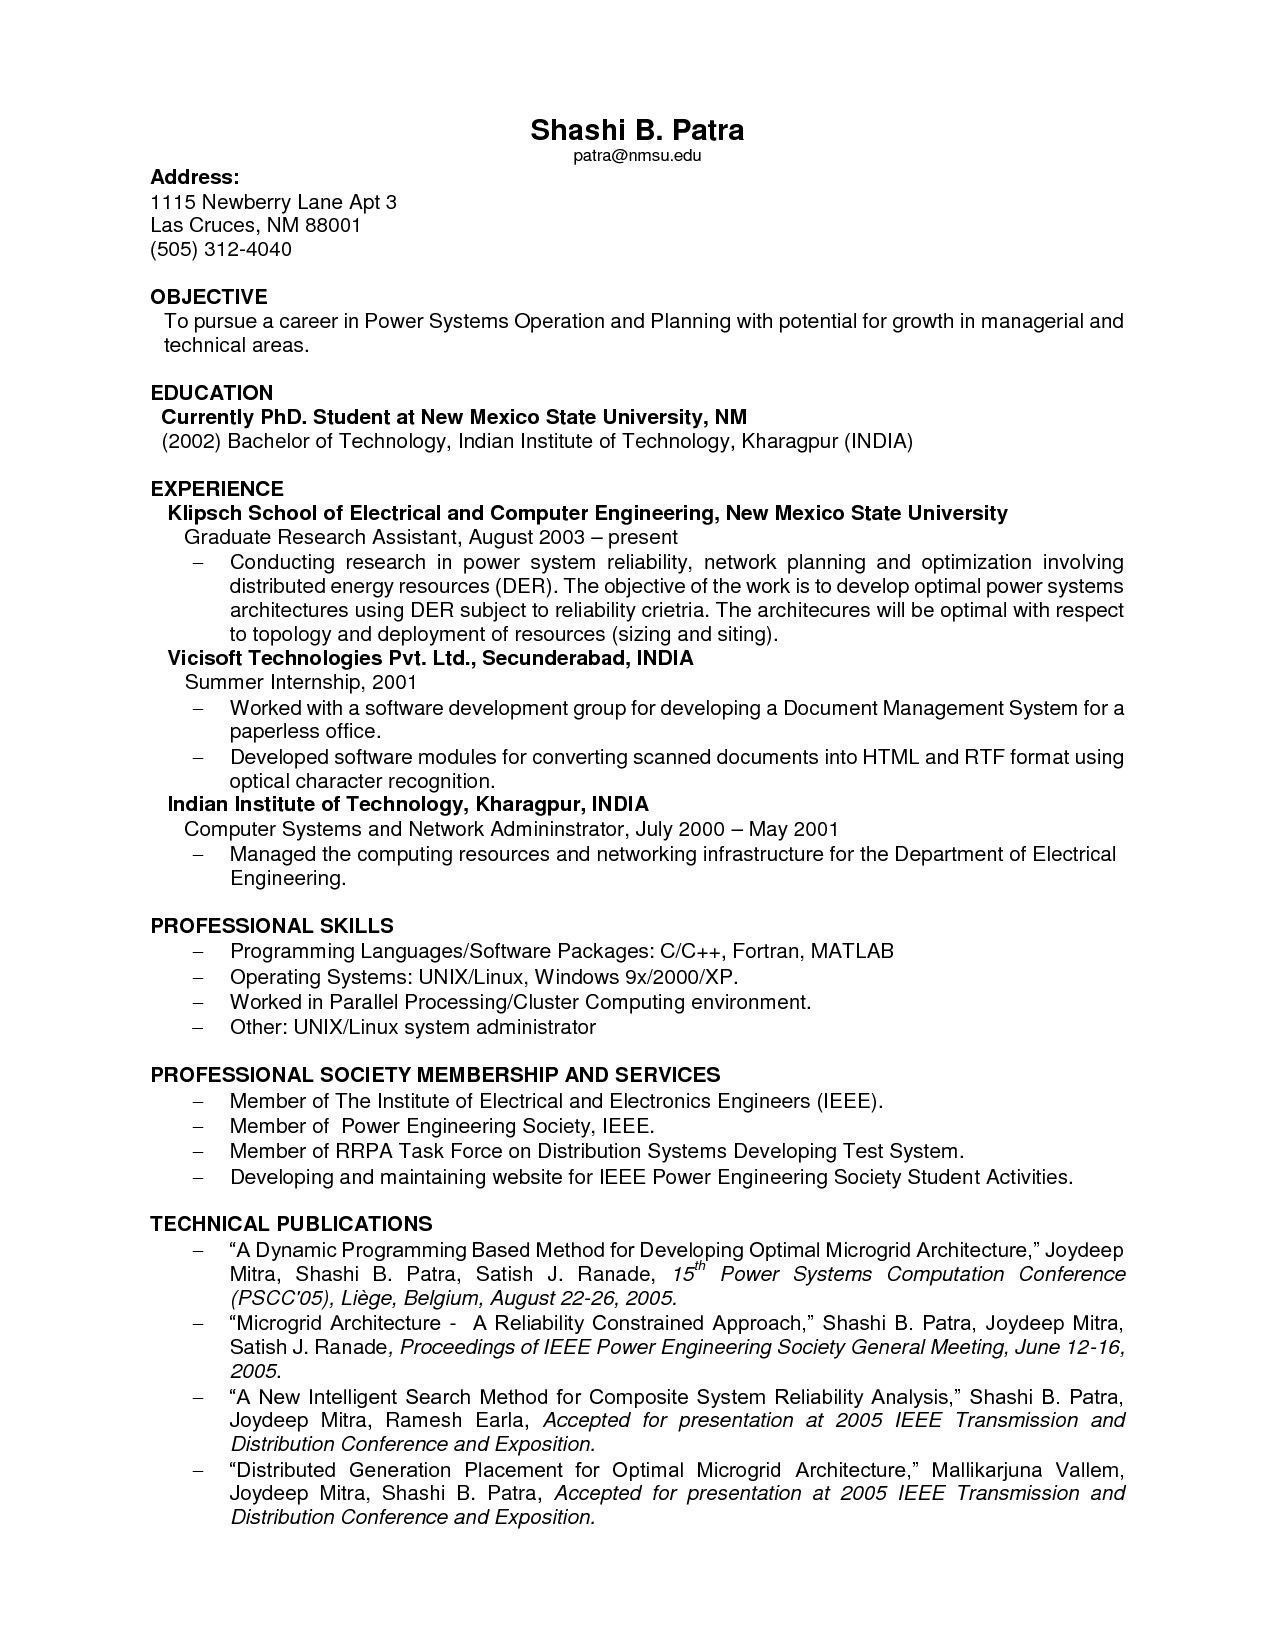 Experience On A Resume Recommended Student Resume No Experience No Experience Resume Template Of 32 Job Resume Examples Student Resume Template Resume Examples